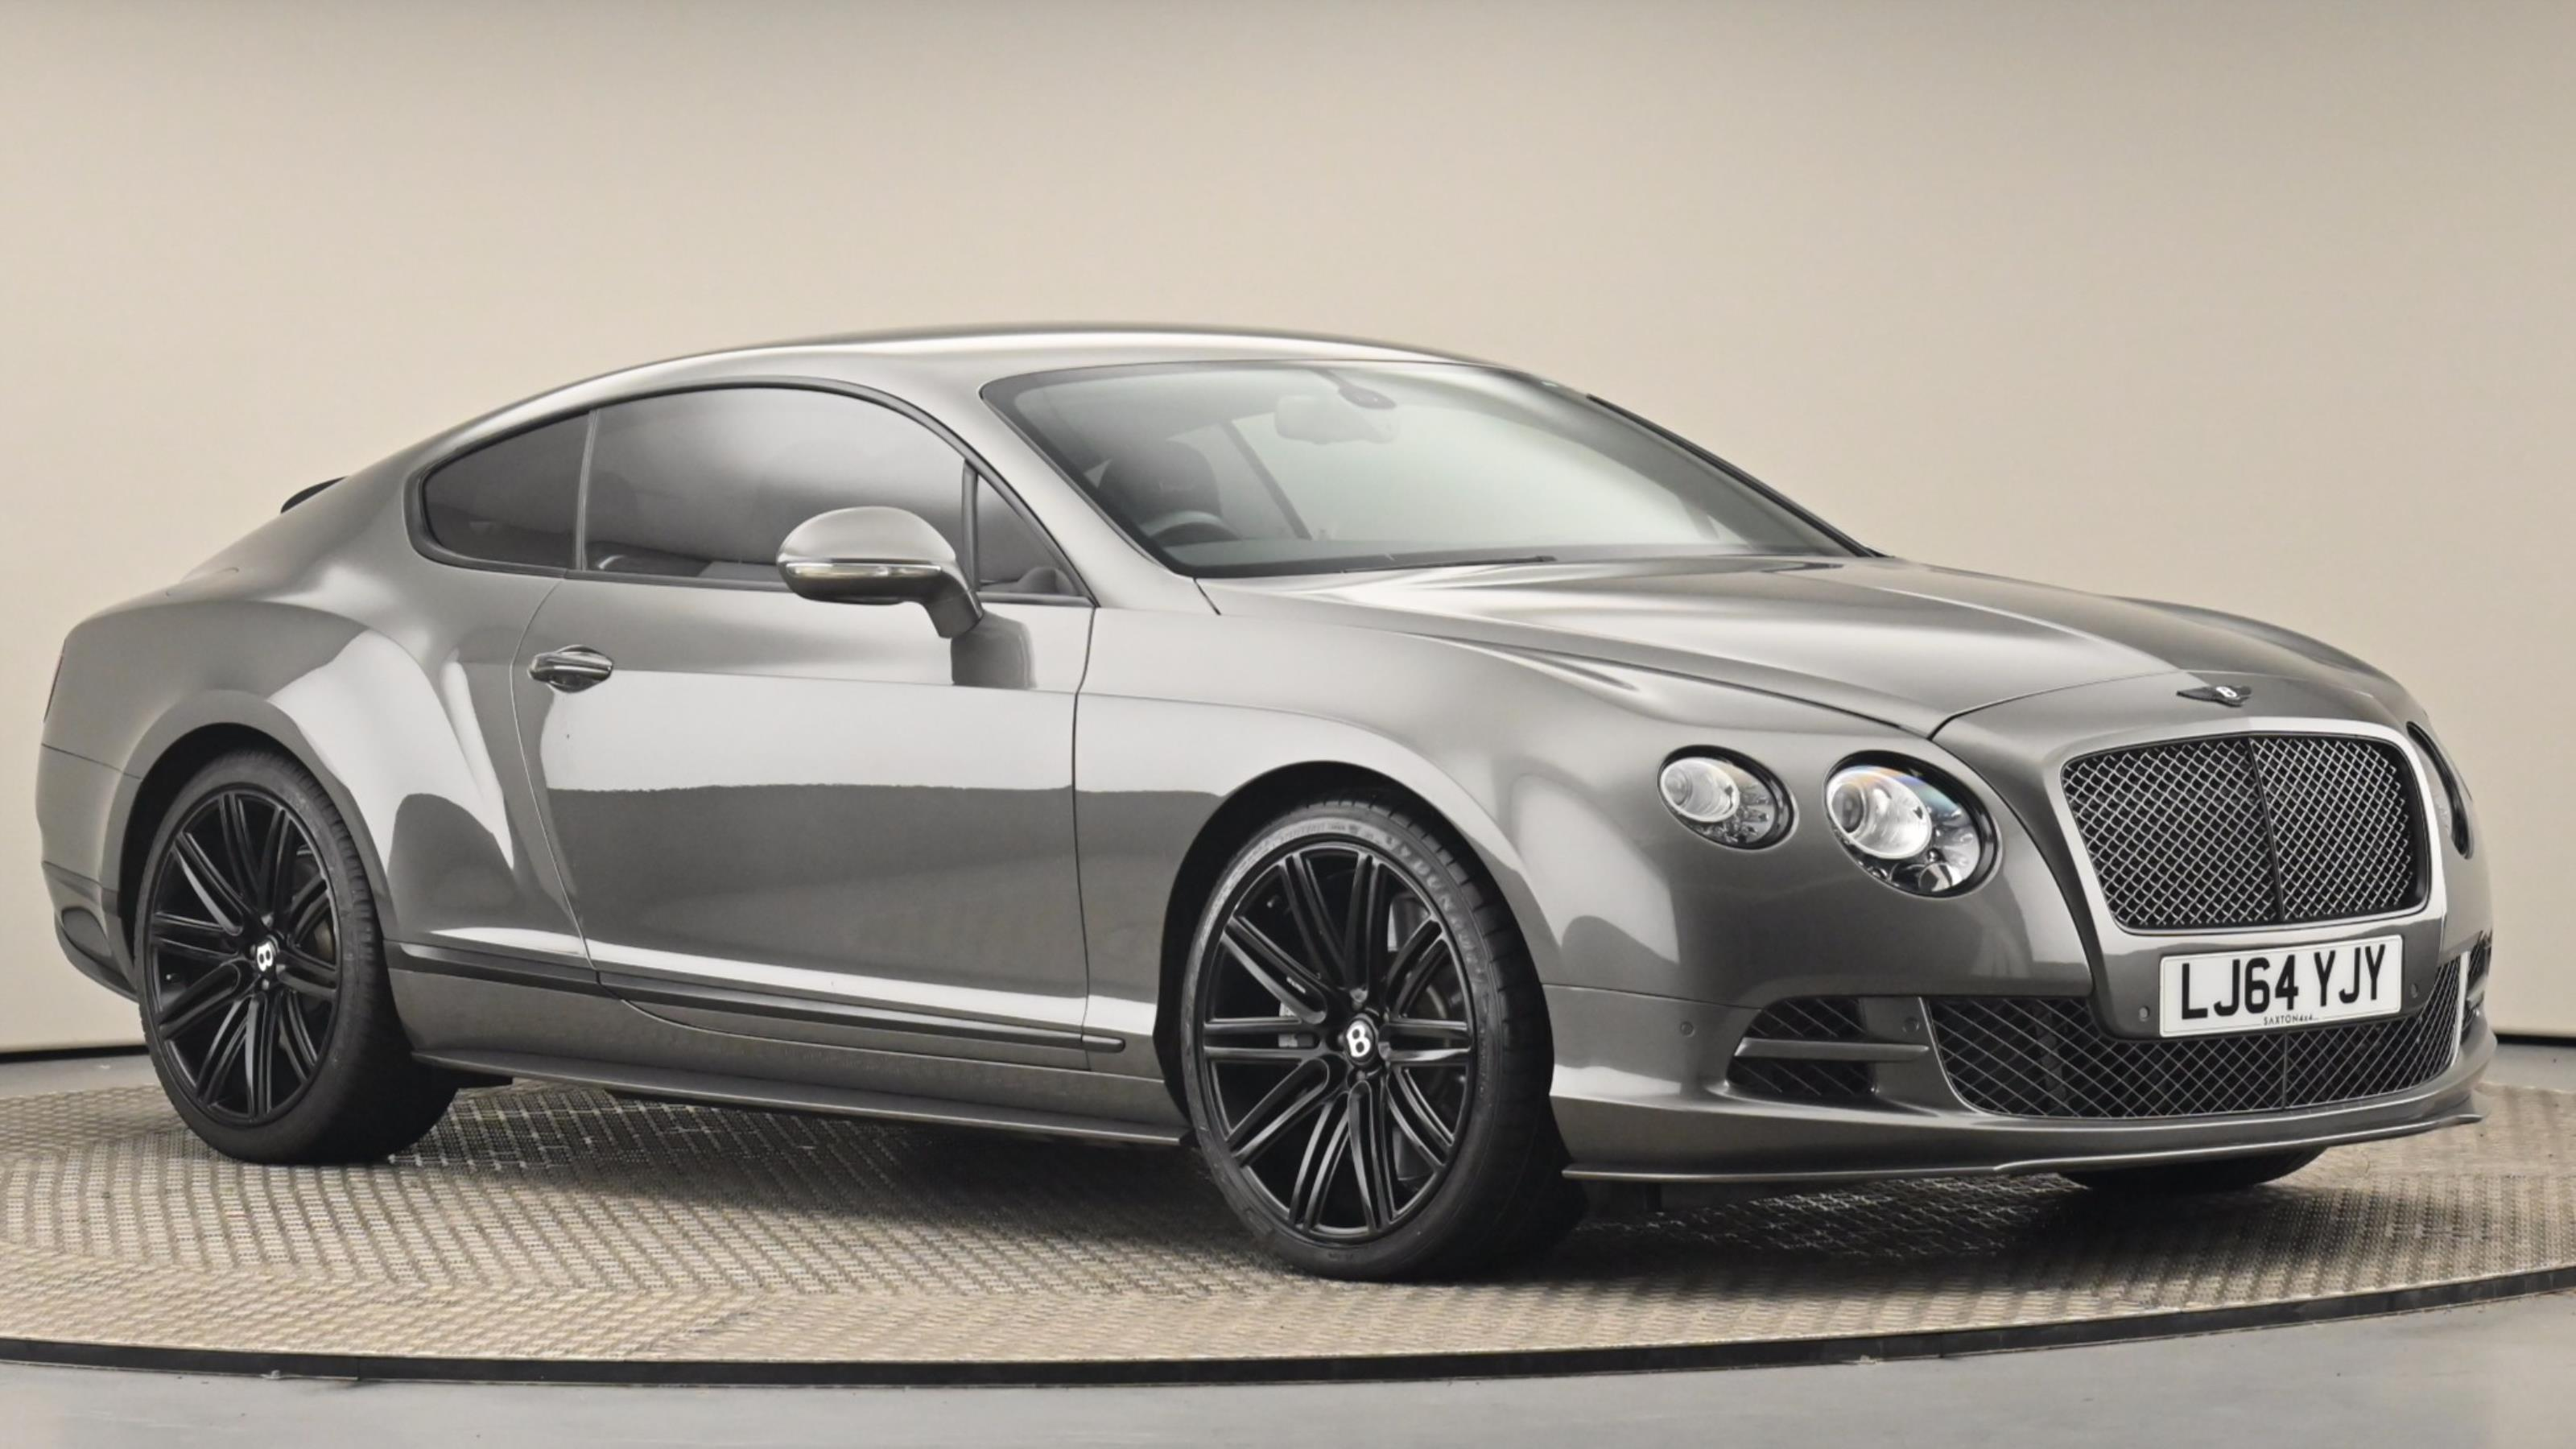 Used 2014 Bentley CONTINENTAL GT 6.0 W12 Speed 2dr Auto GREY at Saxton4x4